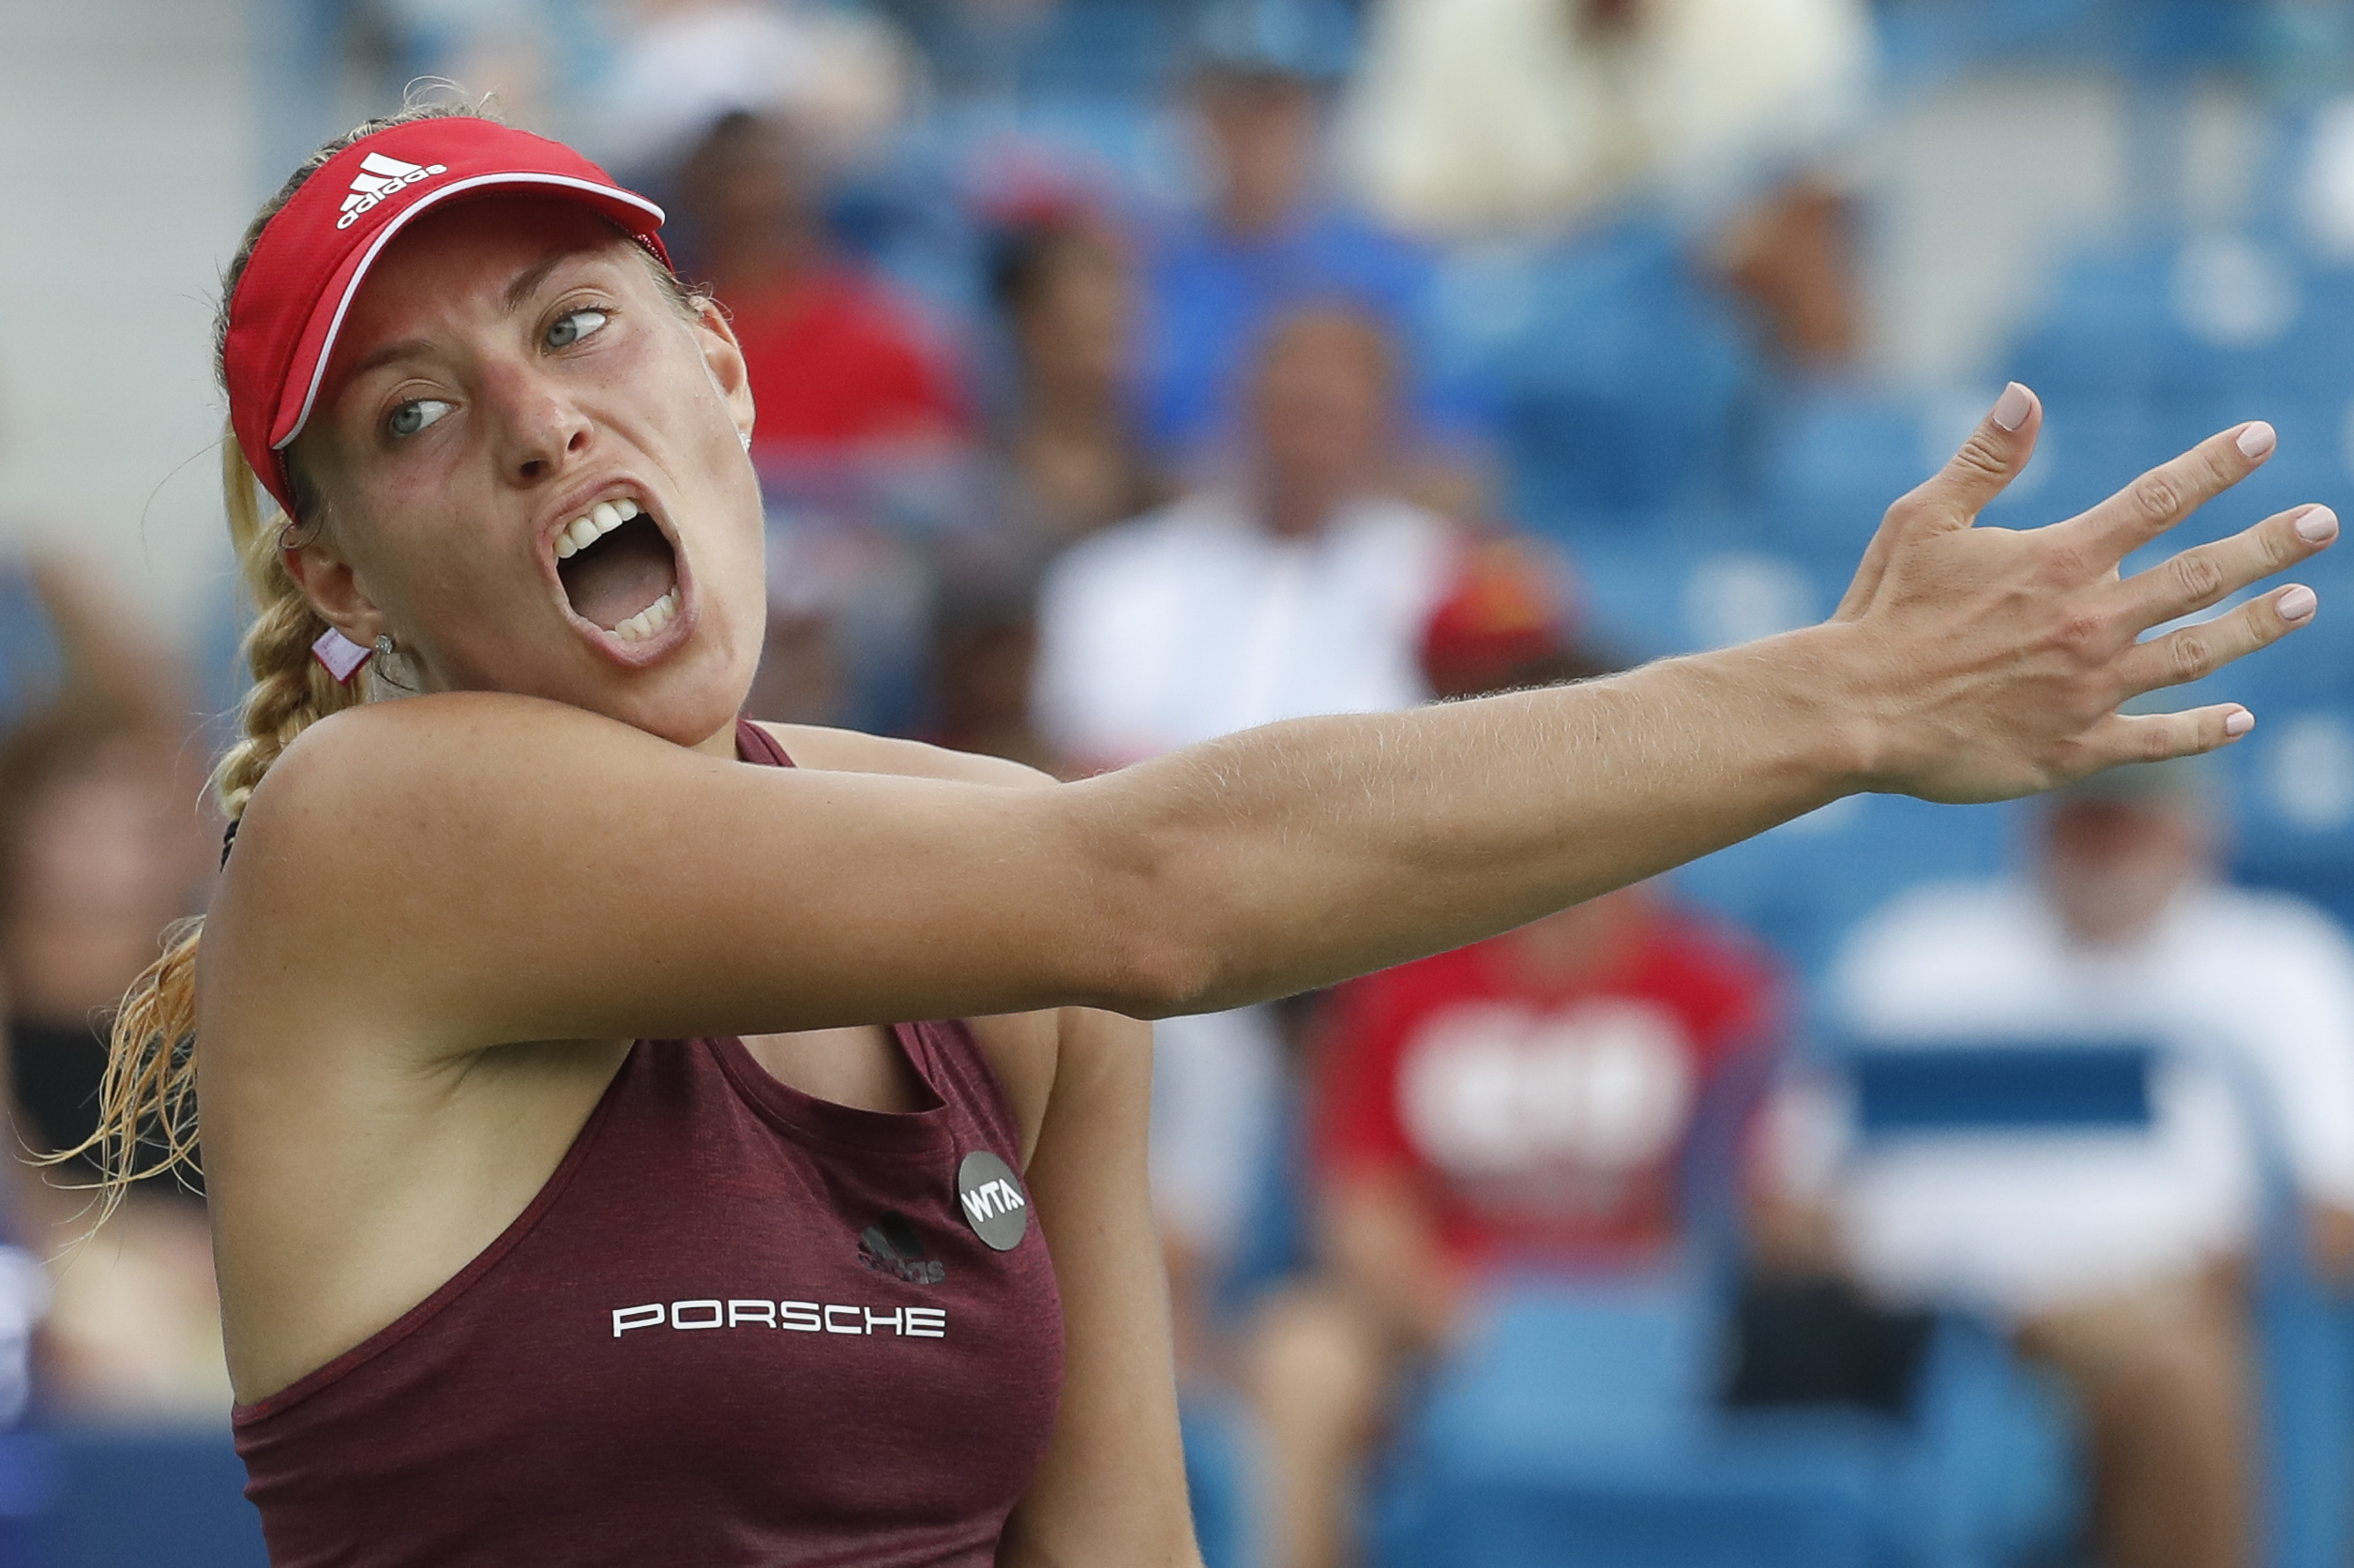 Angelique Kerber, of Germany, reacts during her match against Simona Halep, of Romania, during the semifinals of the Western & Southern Open tennis tournament, Saturday, Aug. 20, 2016, in Mason, Ohio. (AP Photo/John Minchillo)